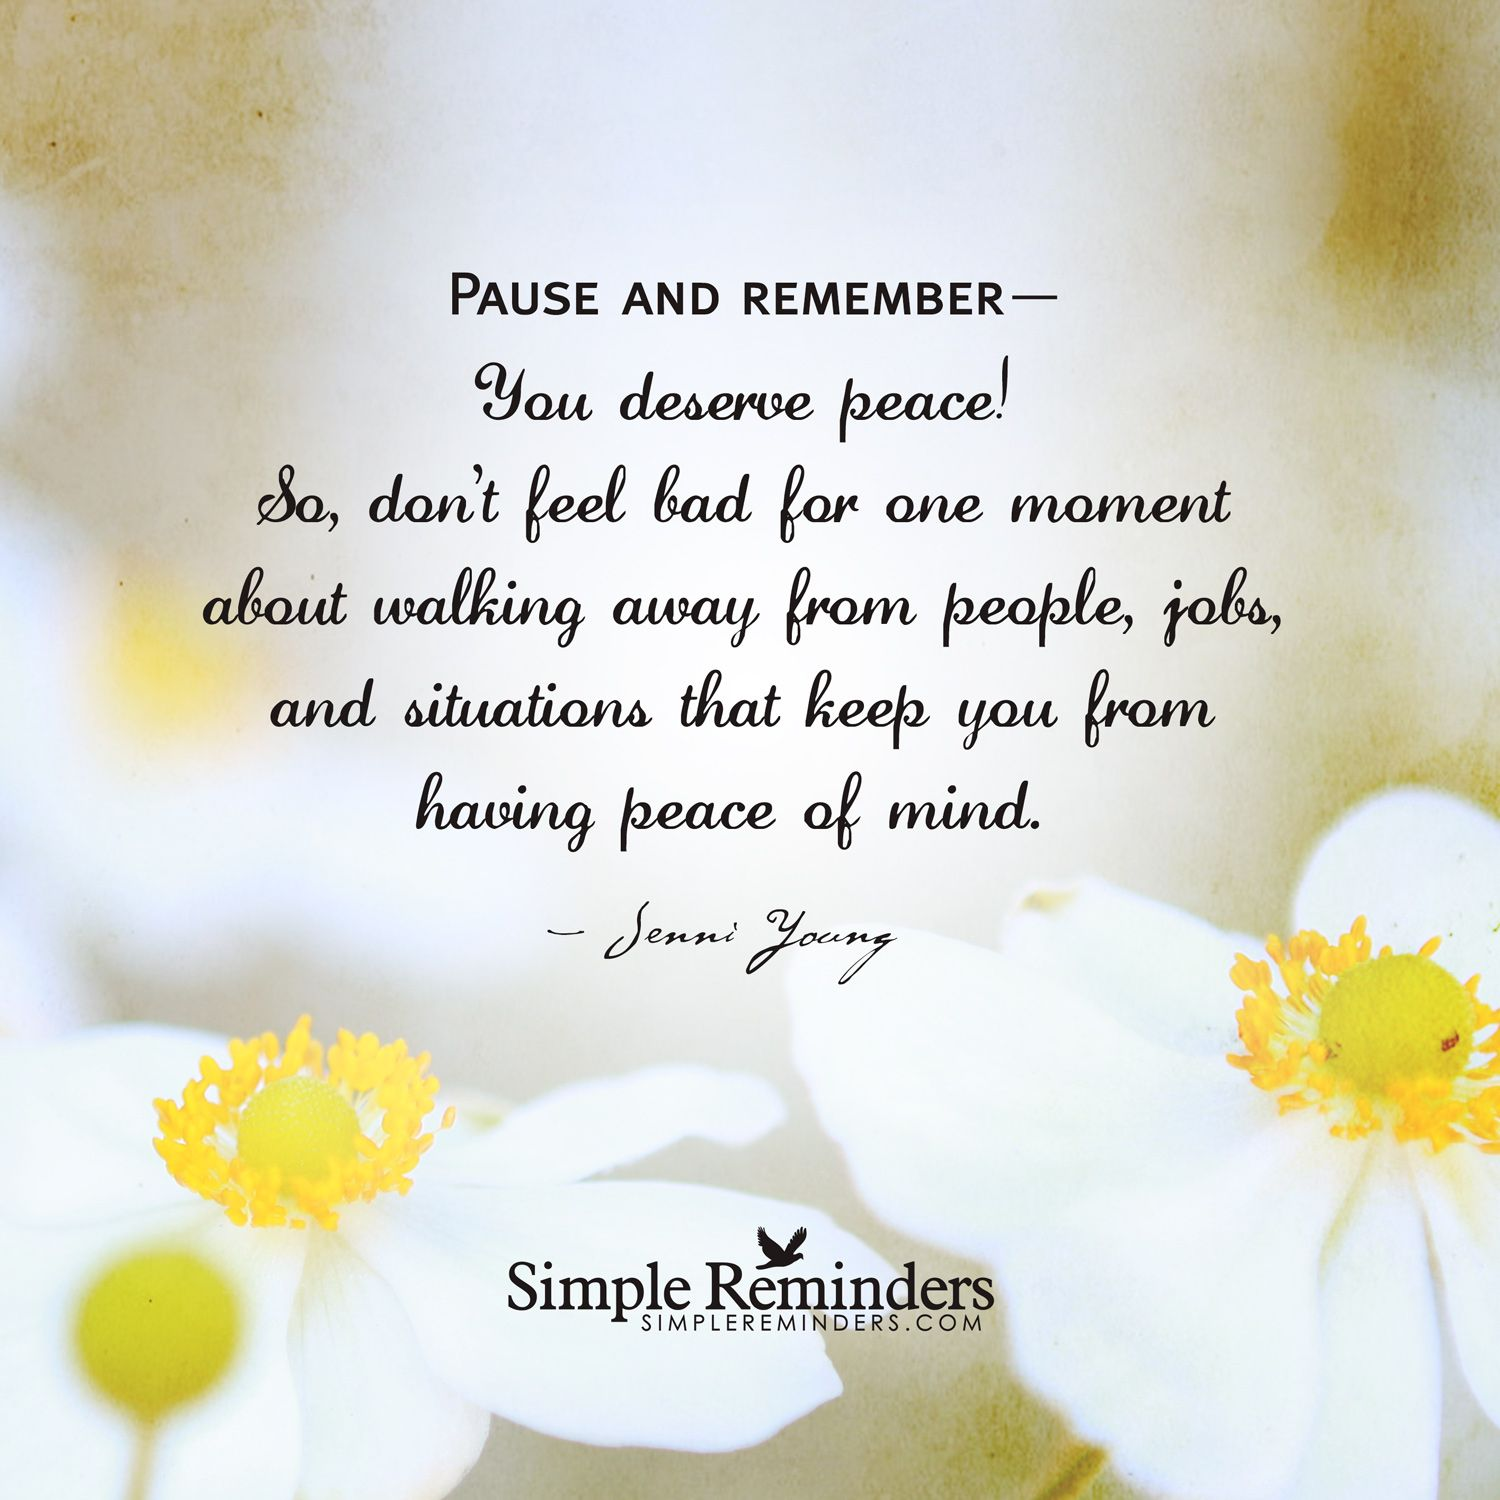 Peaceful Mind Peaceful Life Quotes Pause And Remember You Deserve Peace So Don't Feel Bad For One